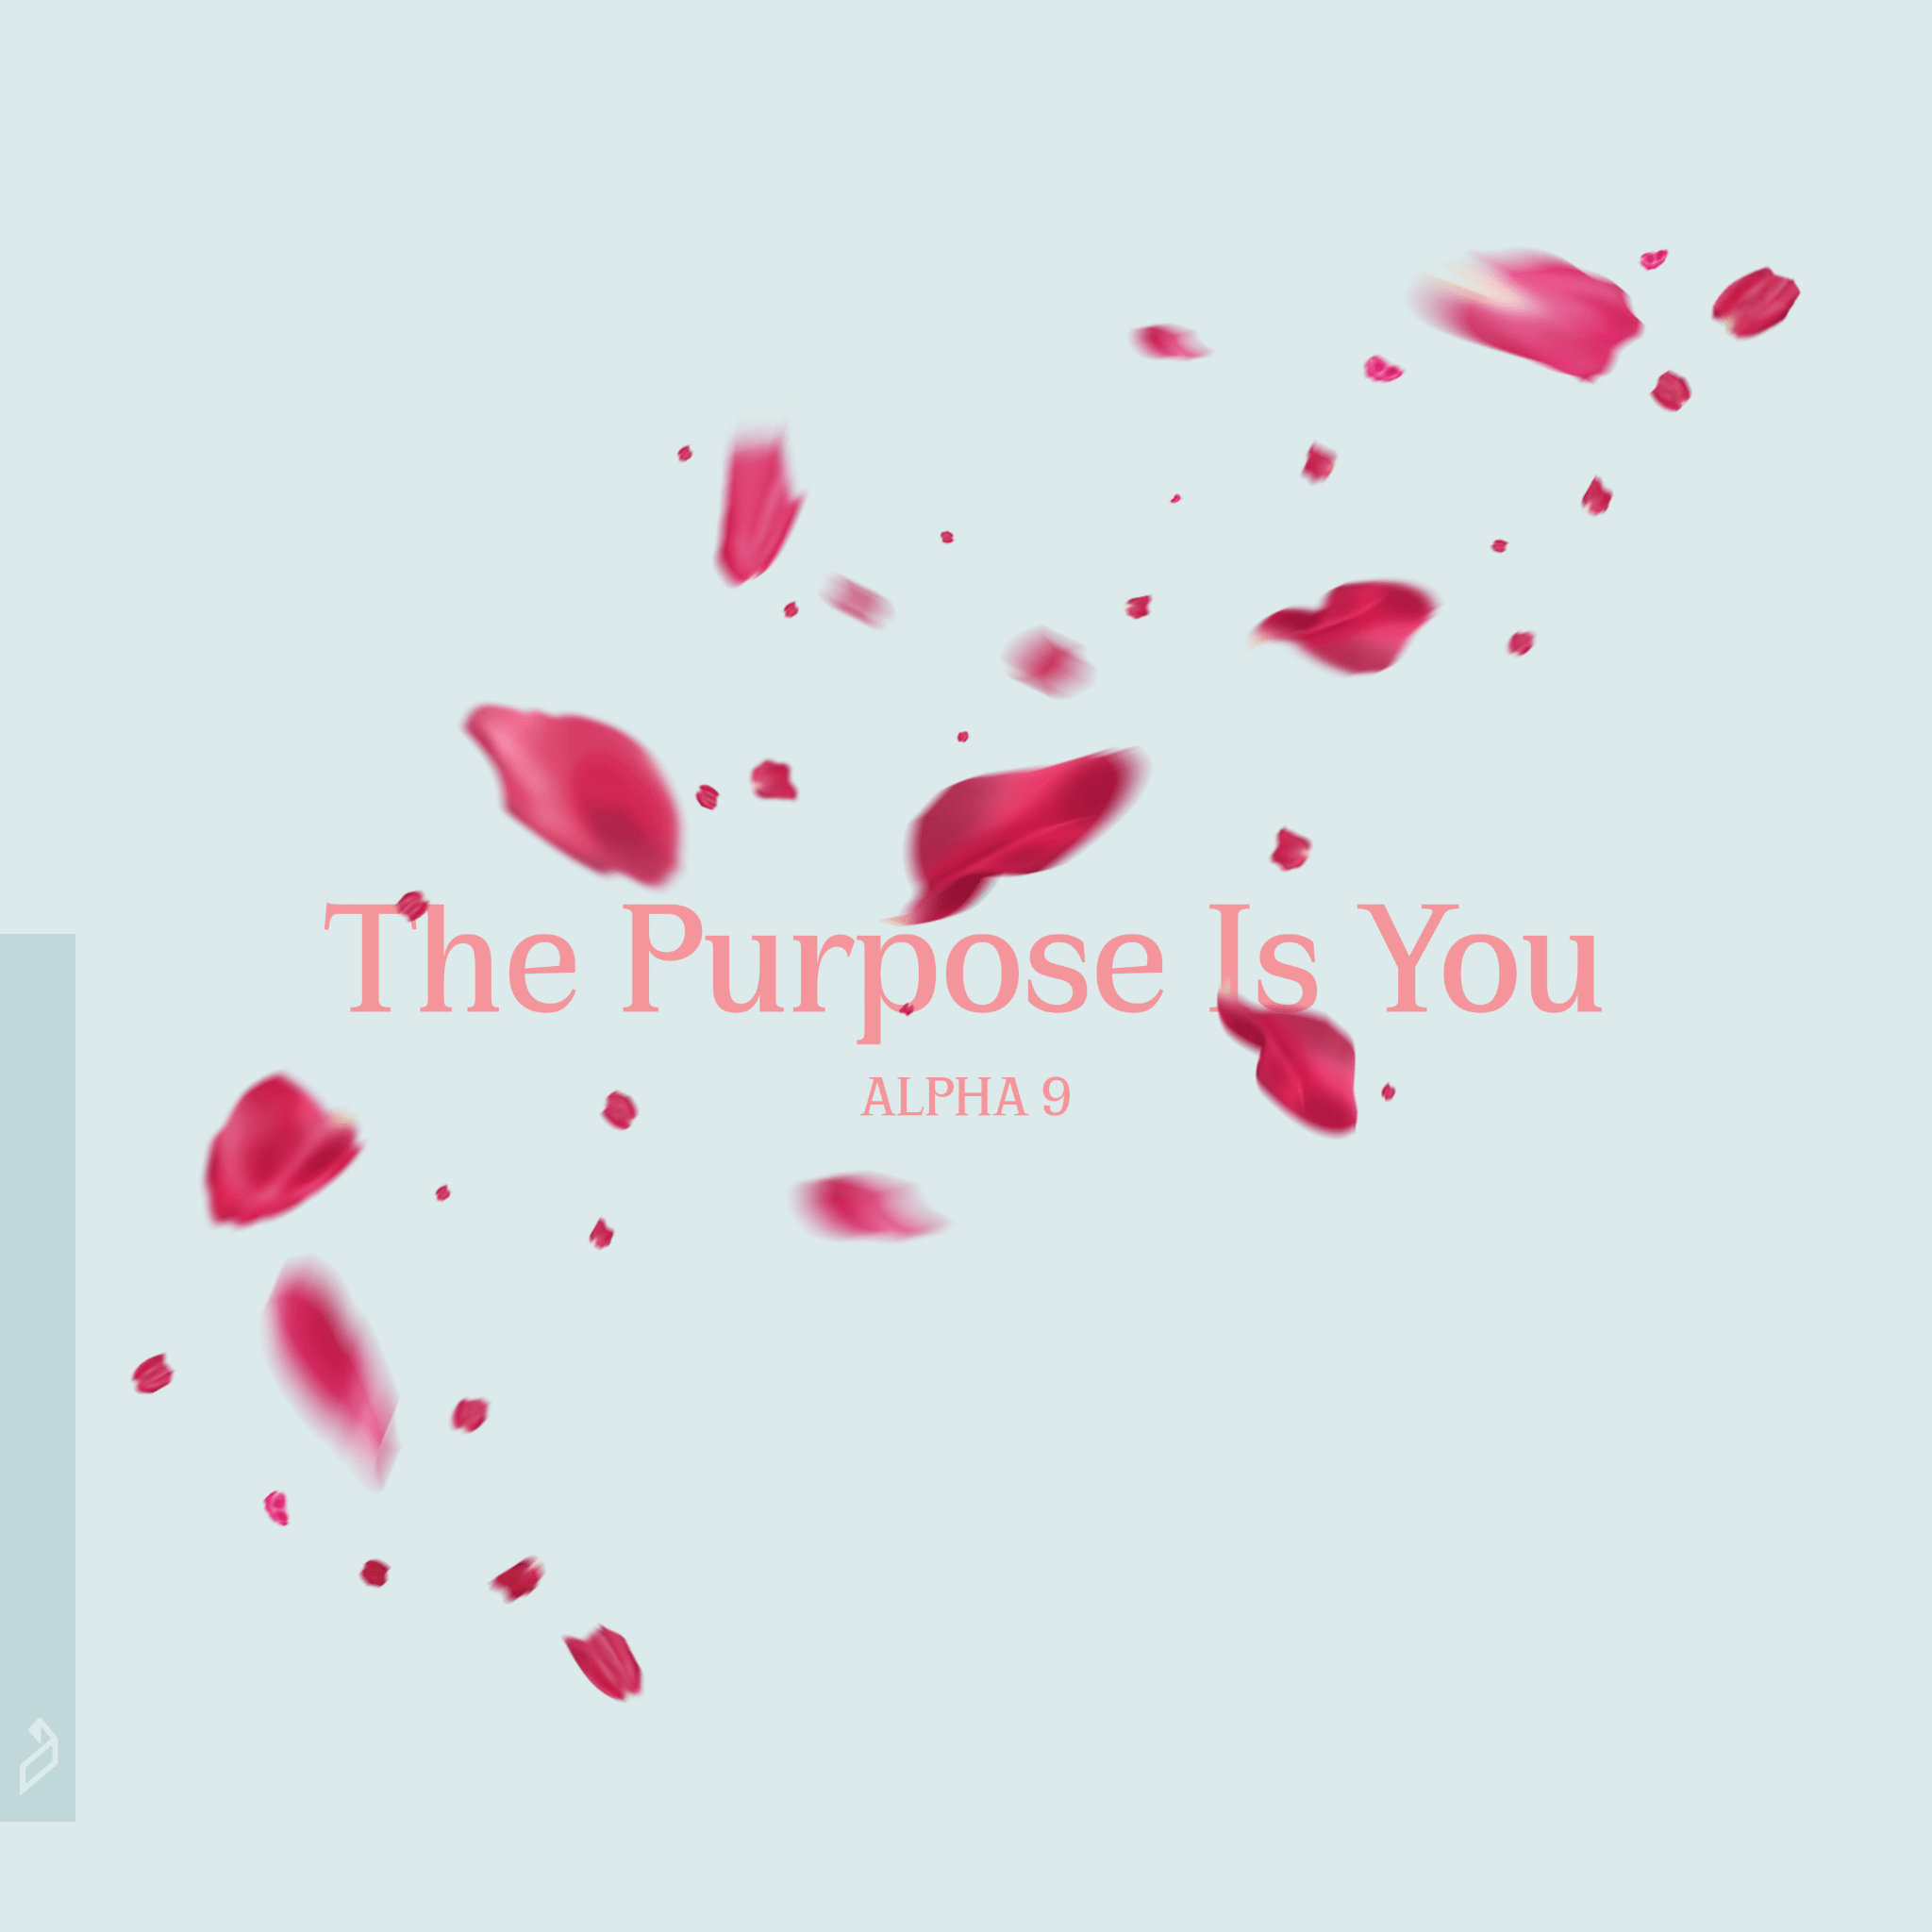 Alpha 9 – The Purpose Is You